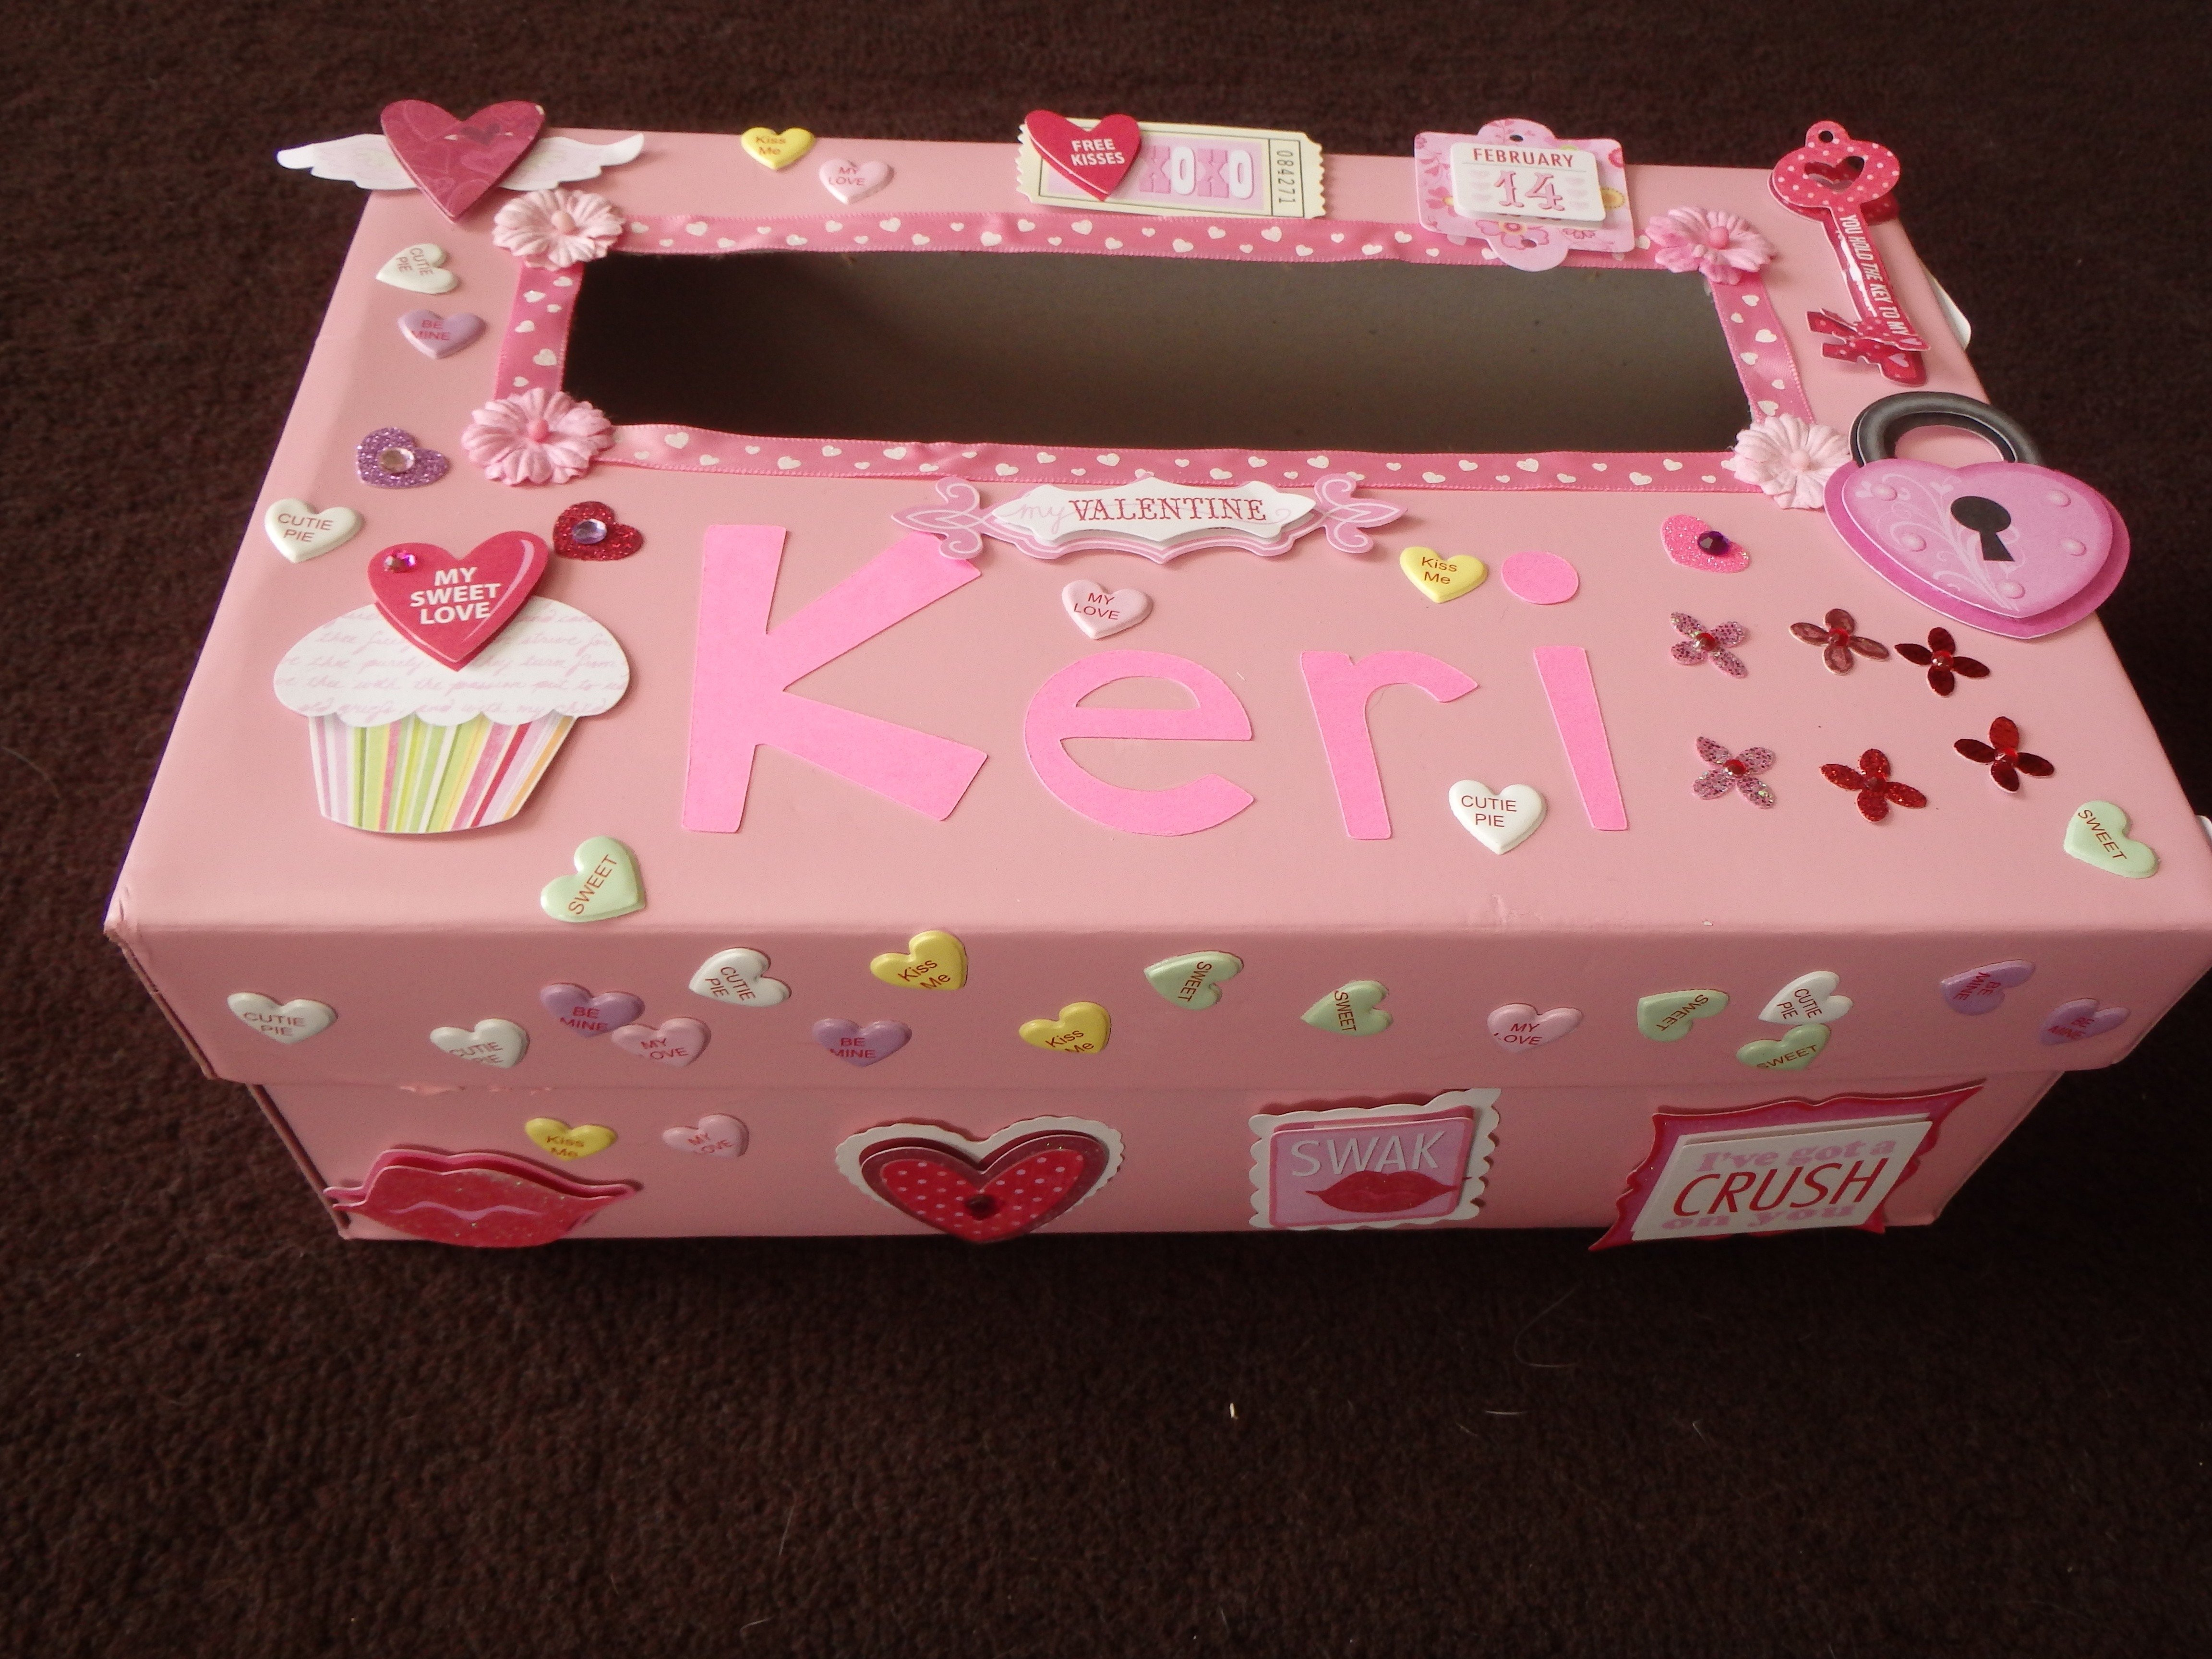 10 Most Popular Ideas For Valentines Day Boxes For School valentines